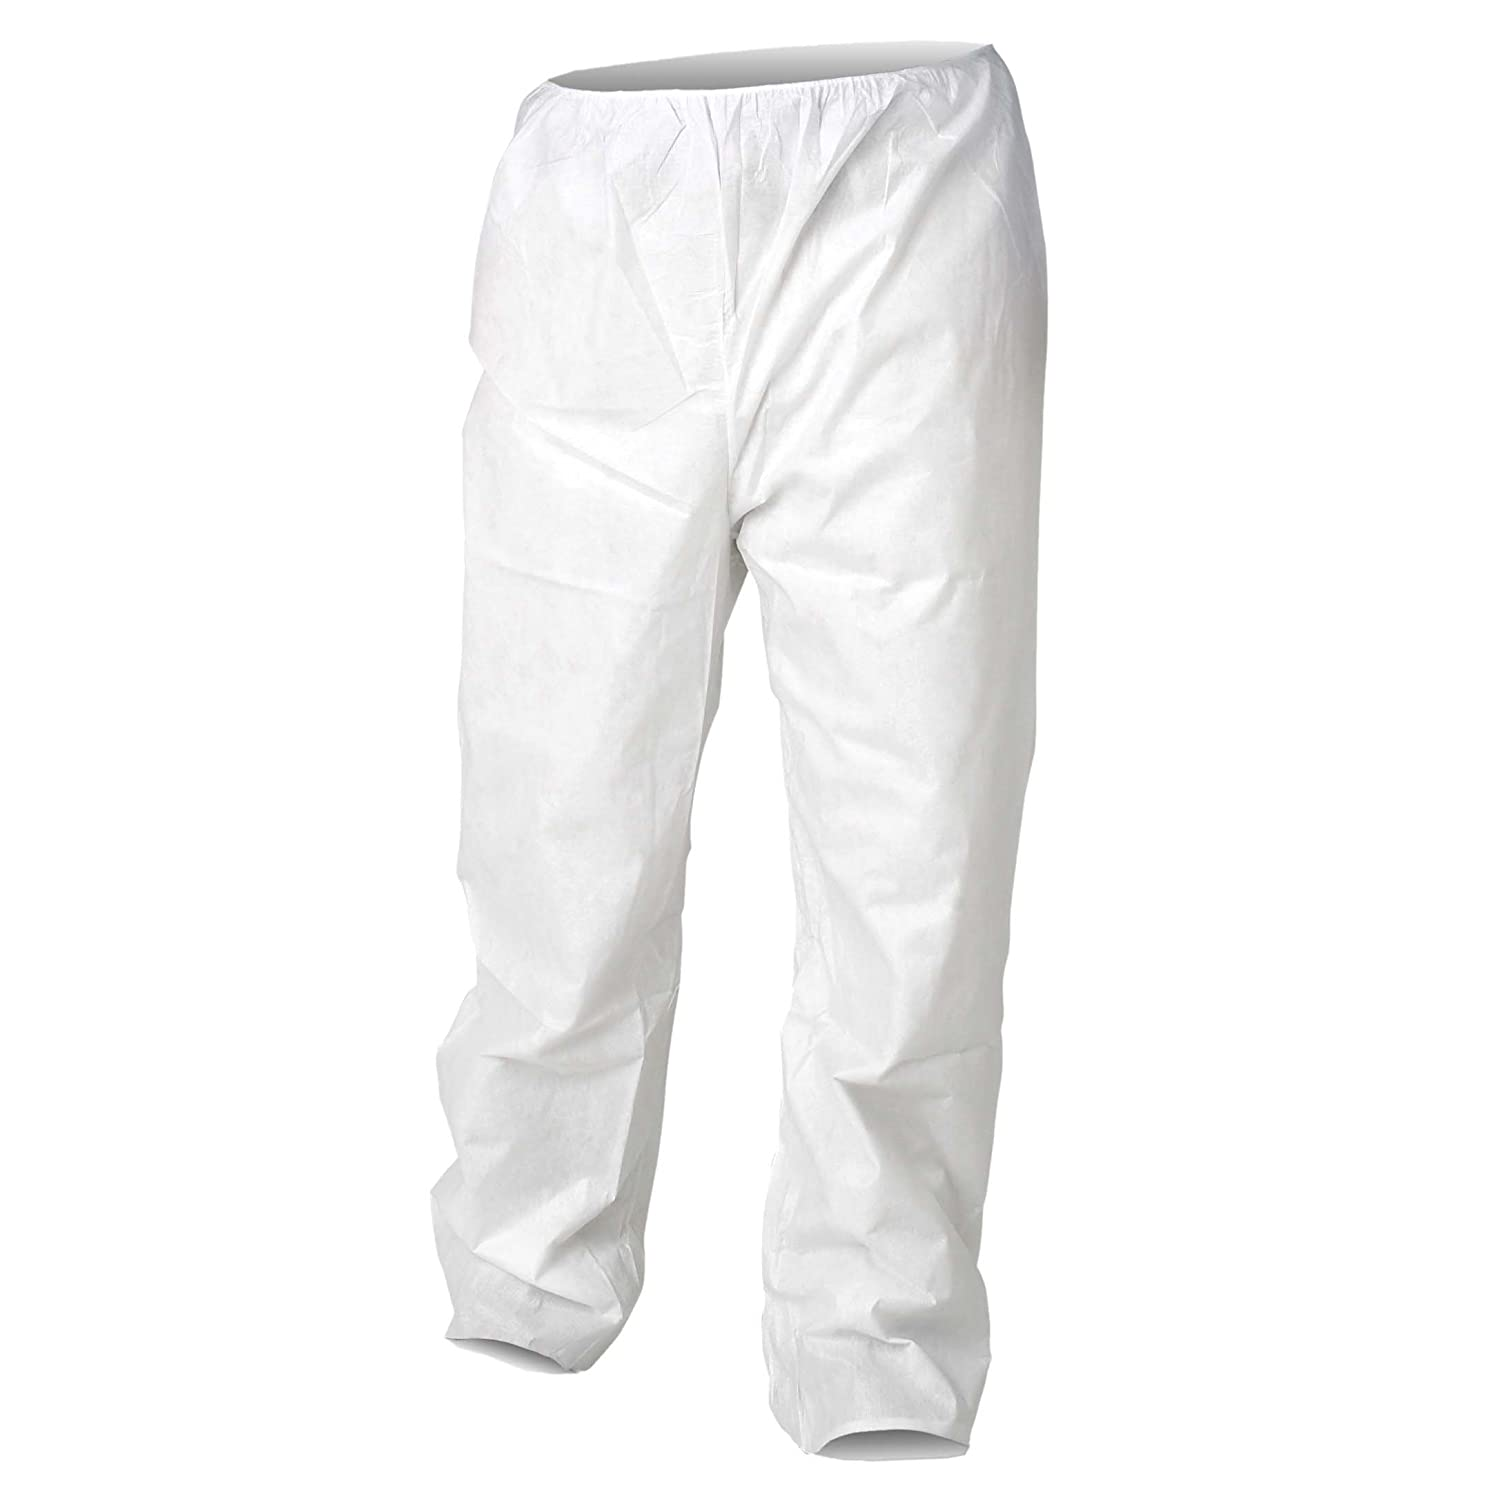 Kleenguard A20 Breathable Particle Protection Pants (36224), Serged Seams, Elastic Waist, Open Ankles, White, XL, 50 / Case